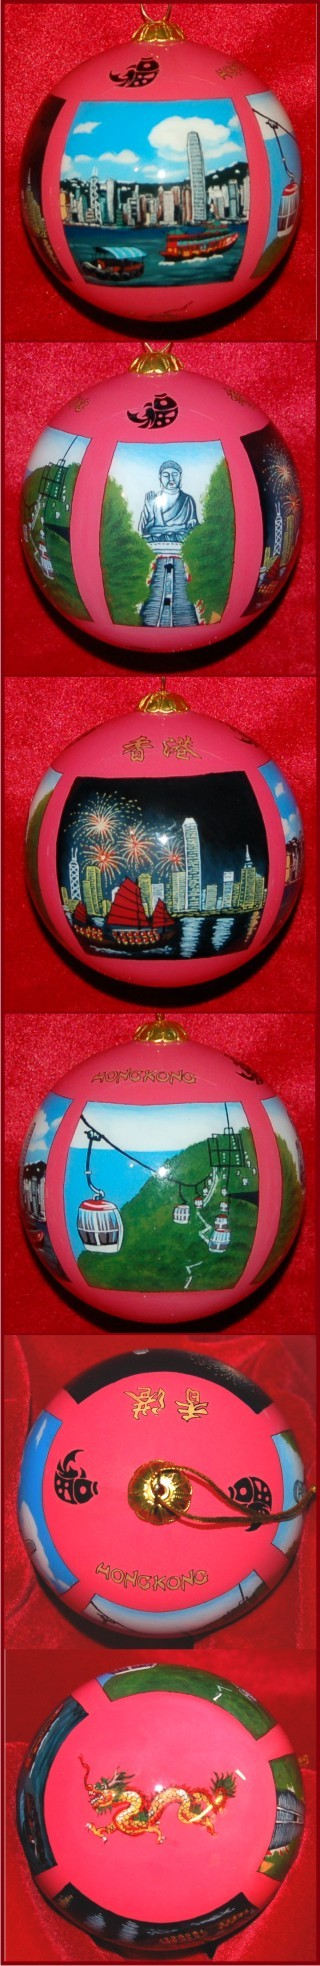 Hong Kong Four Delights Christmas Ornament Personalized by Russell Rhodes